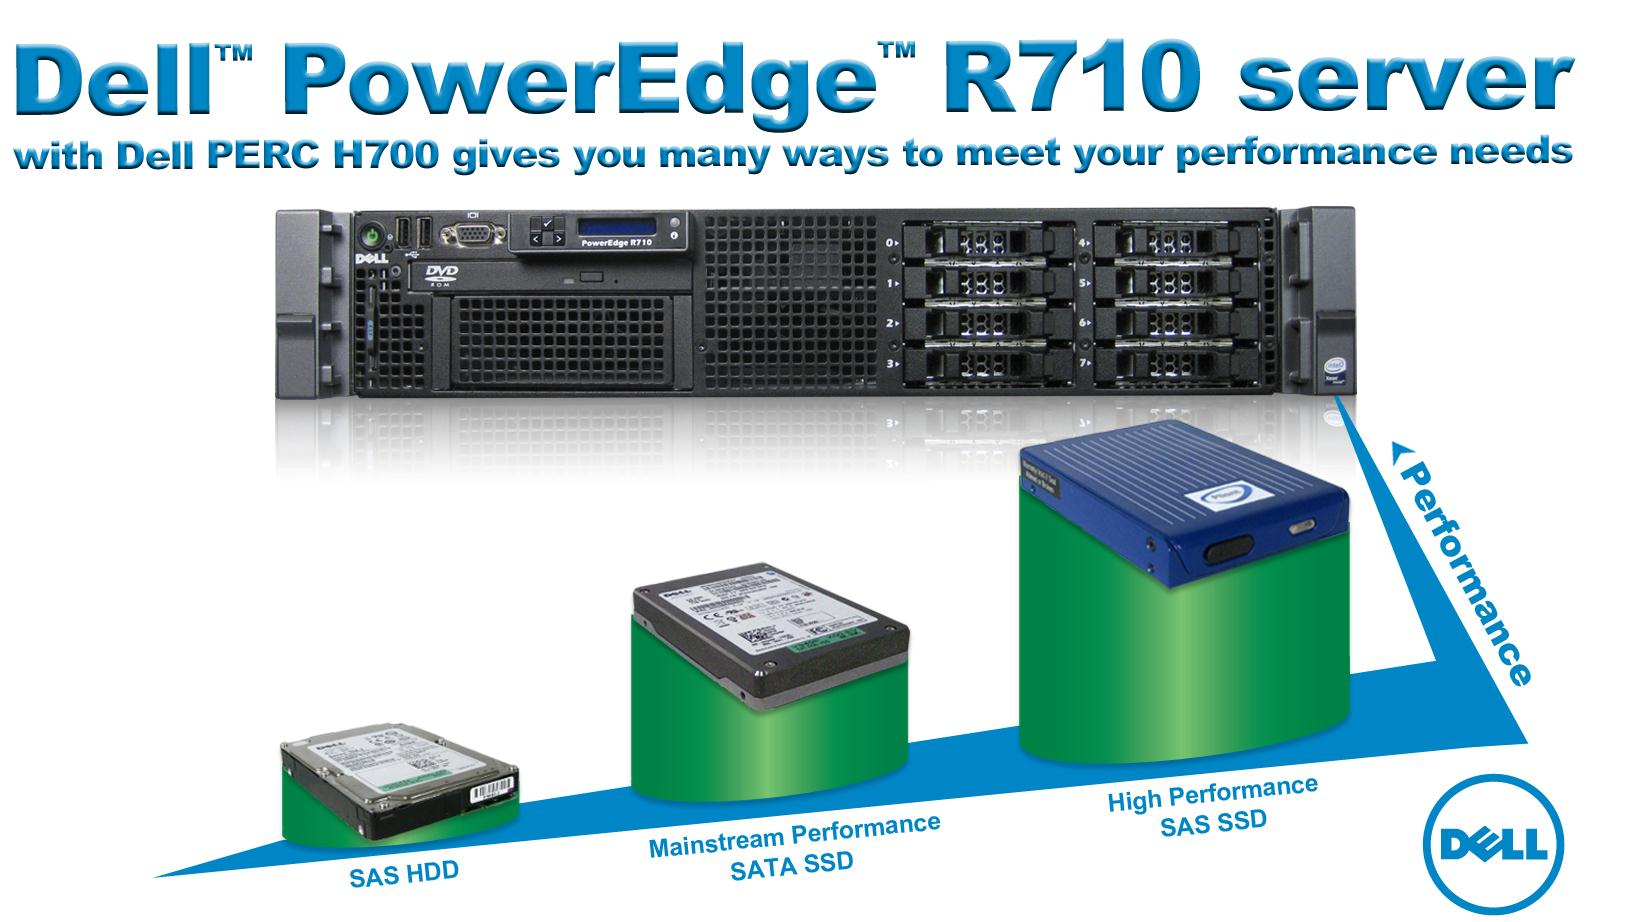 In Principled Technologies tests in our labs, we found that a company using the Dell PowerEdge R710 server with the PowerEdge RAID Controller (PERC) H700 can improve upon the performance of its six